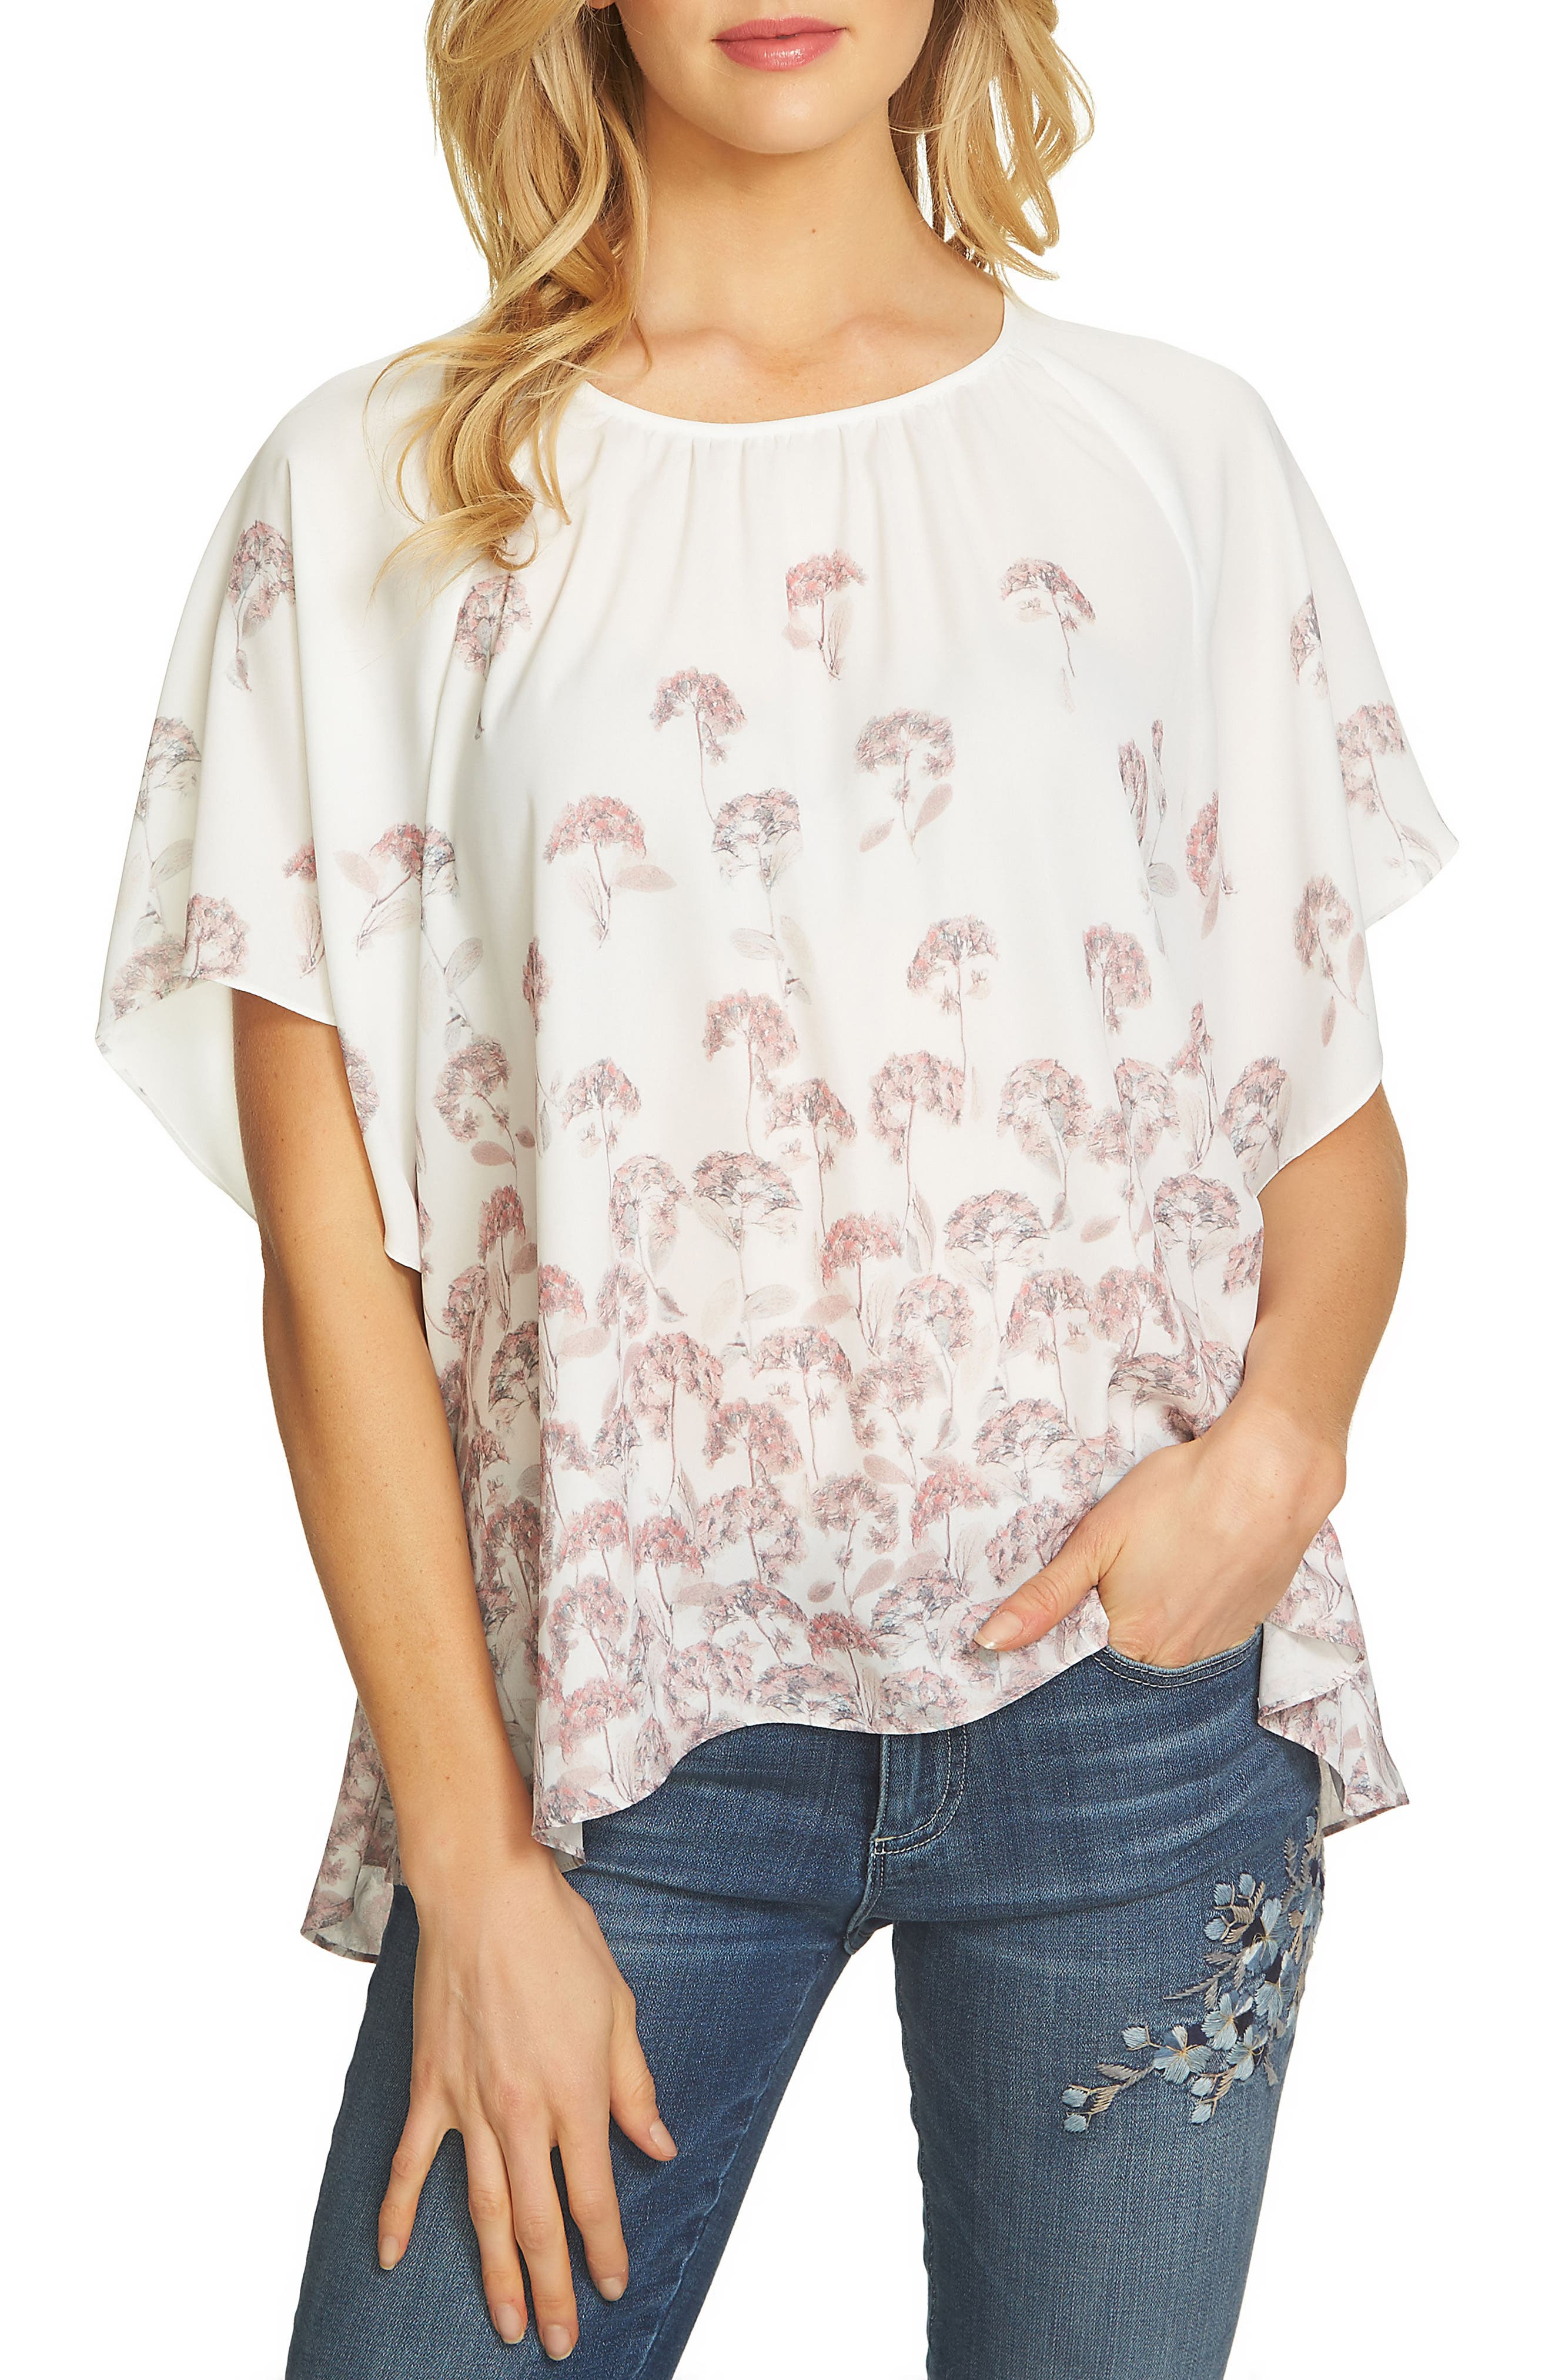 Wisteria Print Blouse,                             Main thumbnail 1, color,                             108